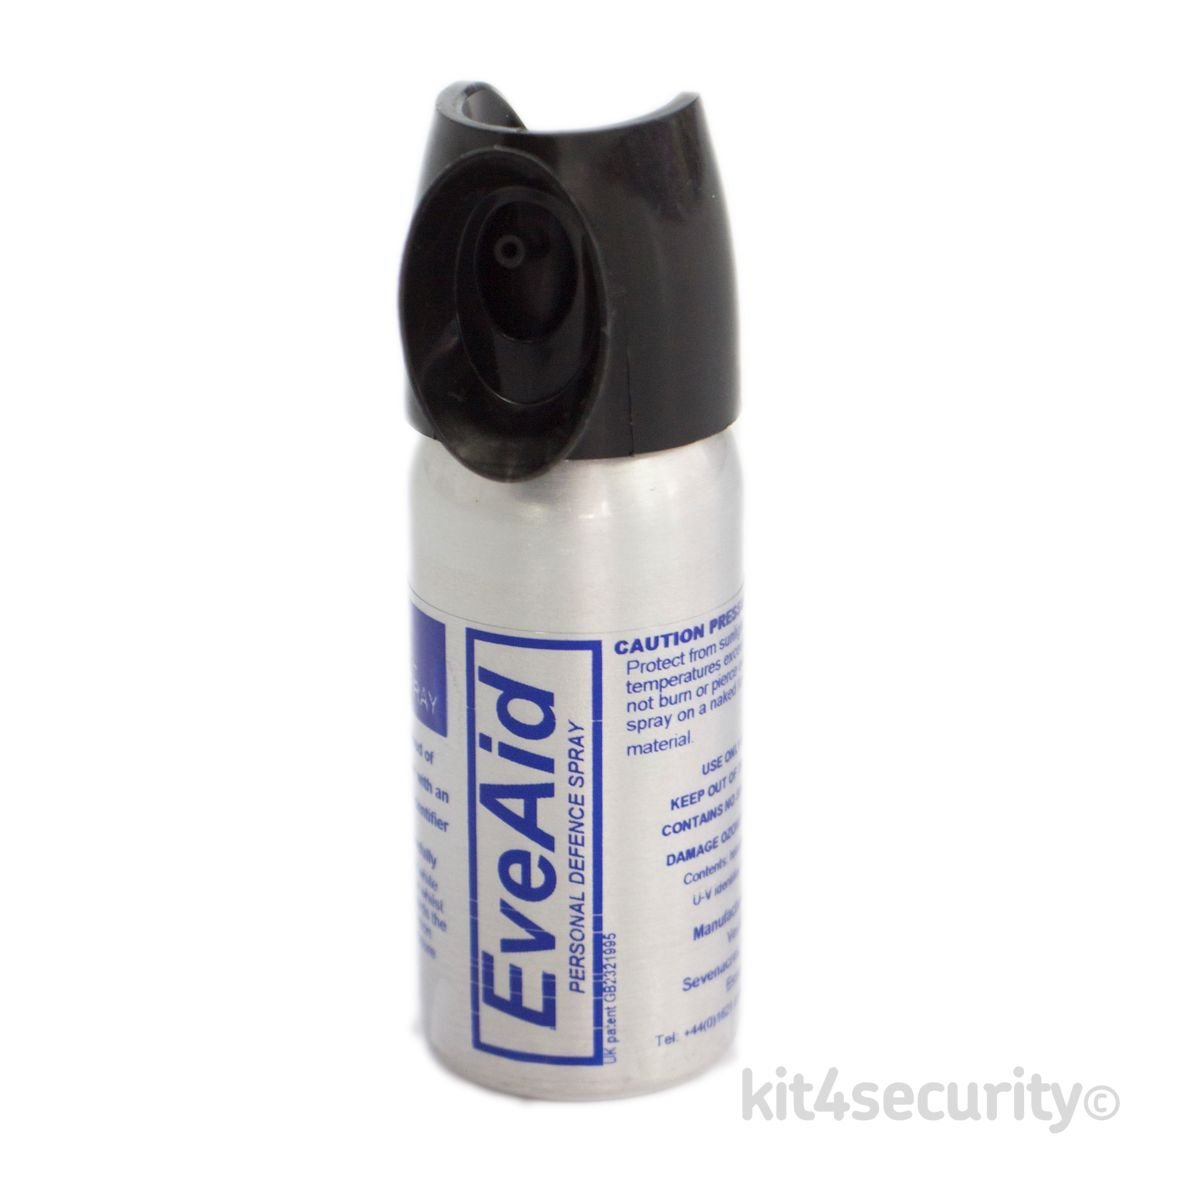 Where can i buy pepper spray or mace in the uk